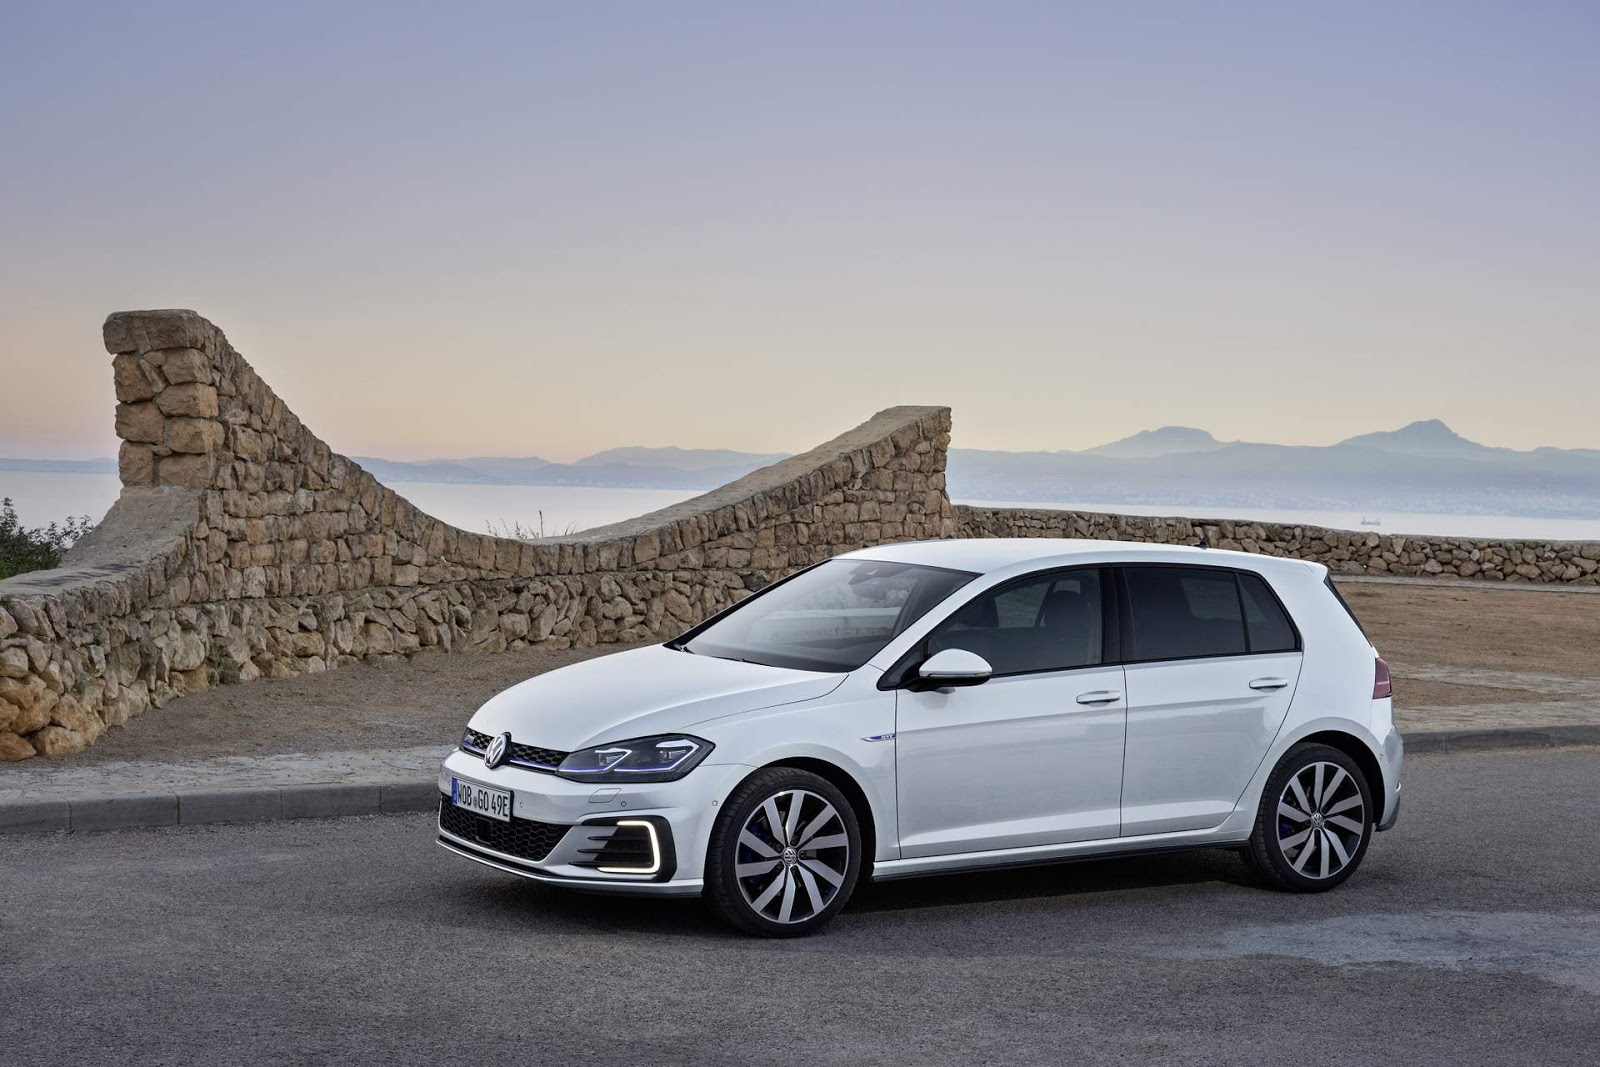 volkswagen apresenta linha 2018 do e golf golf gte e r car blog br. Black Bedroom Furniture Sets. Home Design Ideas